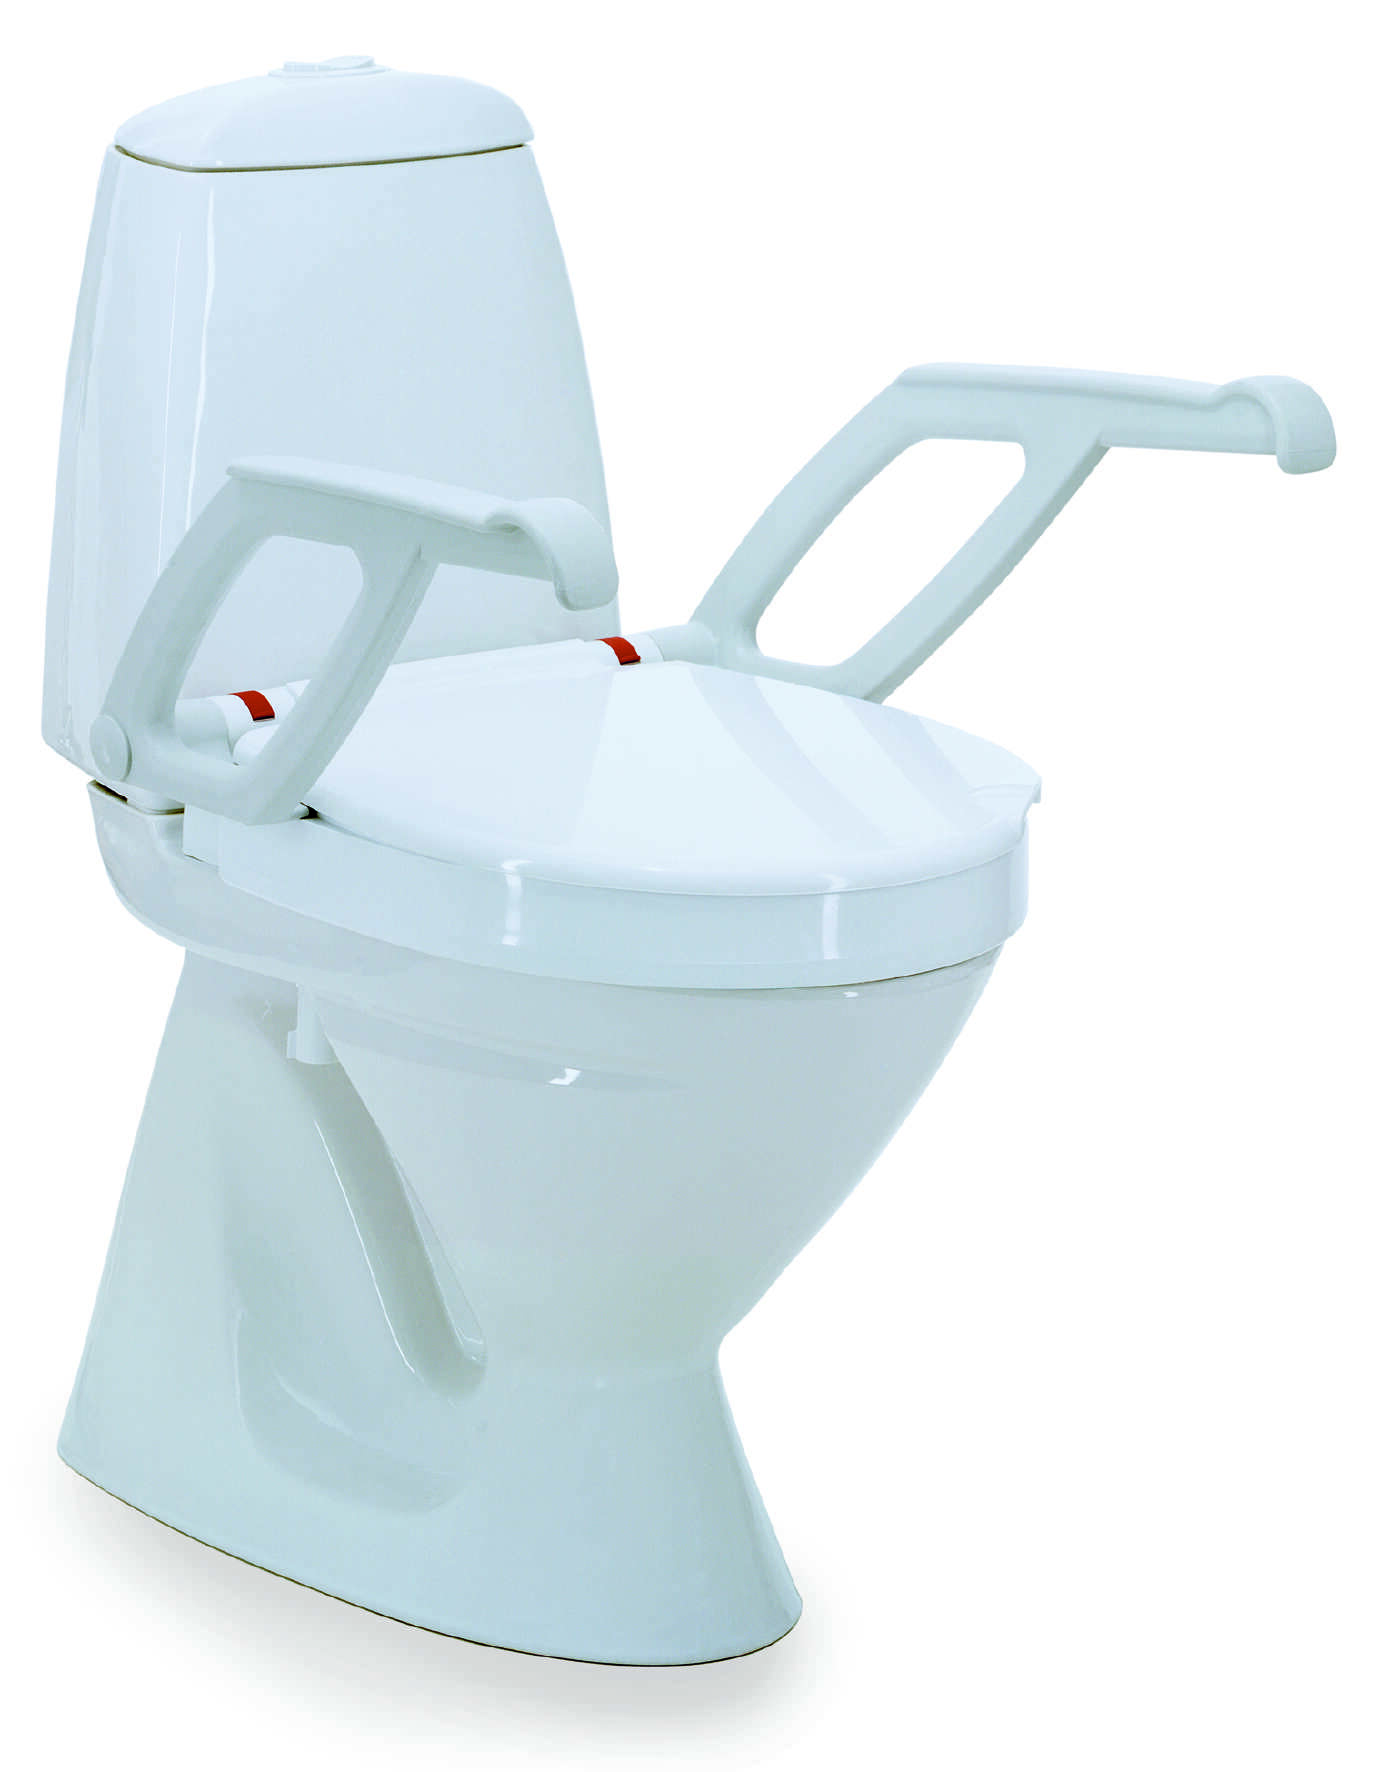 Incredible Eastin Aquatec 90000 Toilet Seat Raiser Invacare Ltd Caraccident5 Cool Chair Designs And Ideas Caraccident5Info